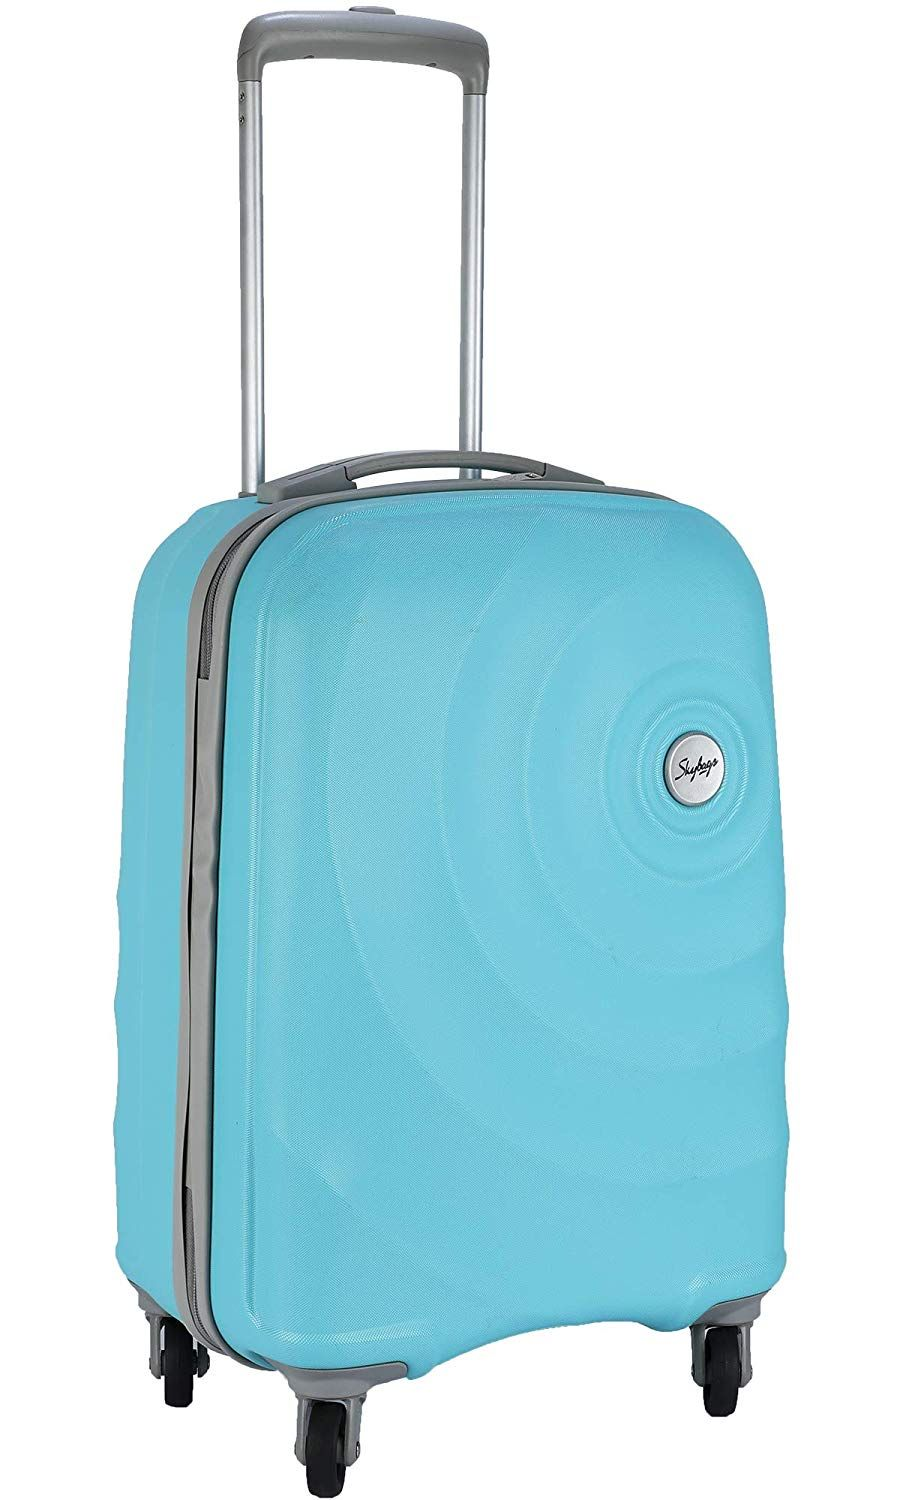 Skybags Mint 55 cms Polycarbonate Turquoise Hardsided Cabin Luggage